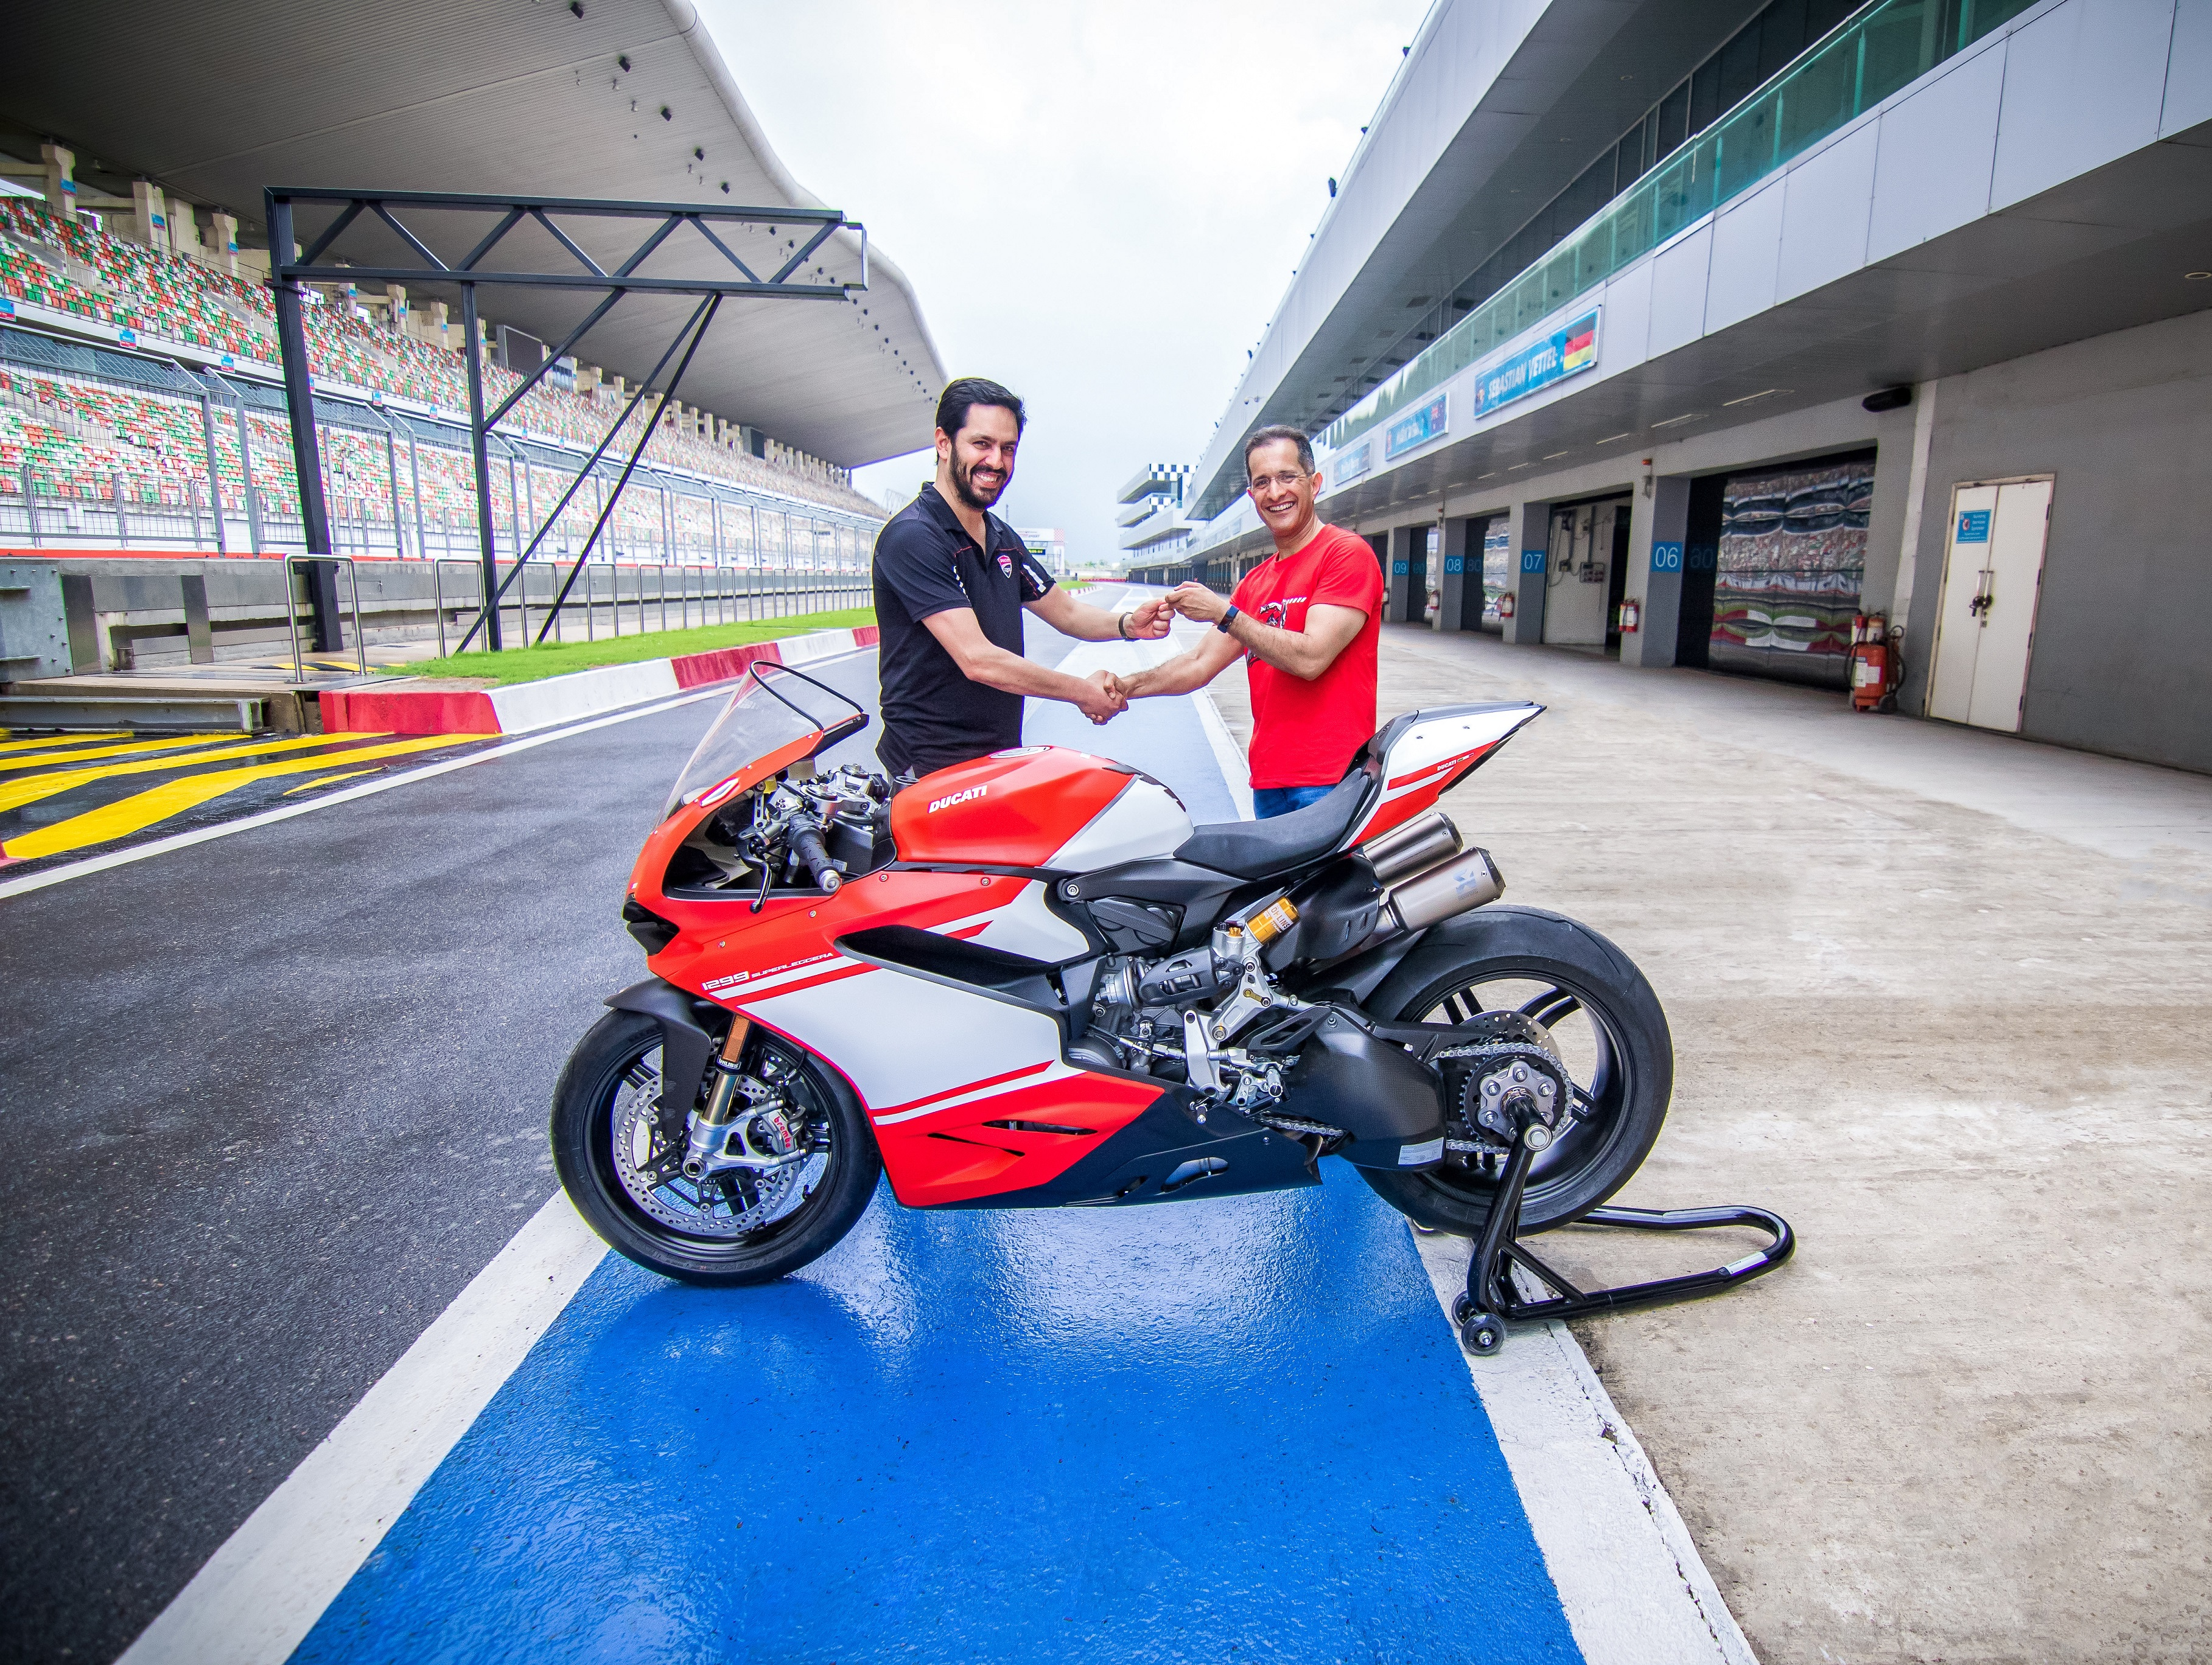 India S Only Ducati 1299 Superleggera Sold Out Priced At Inr 1 12